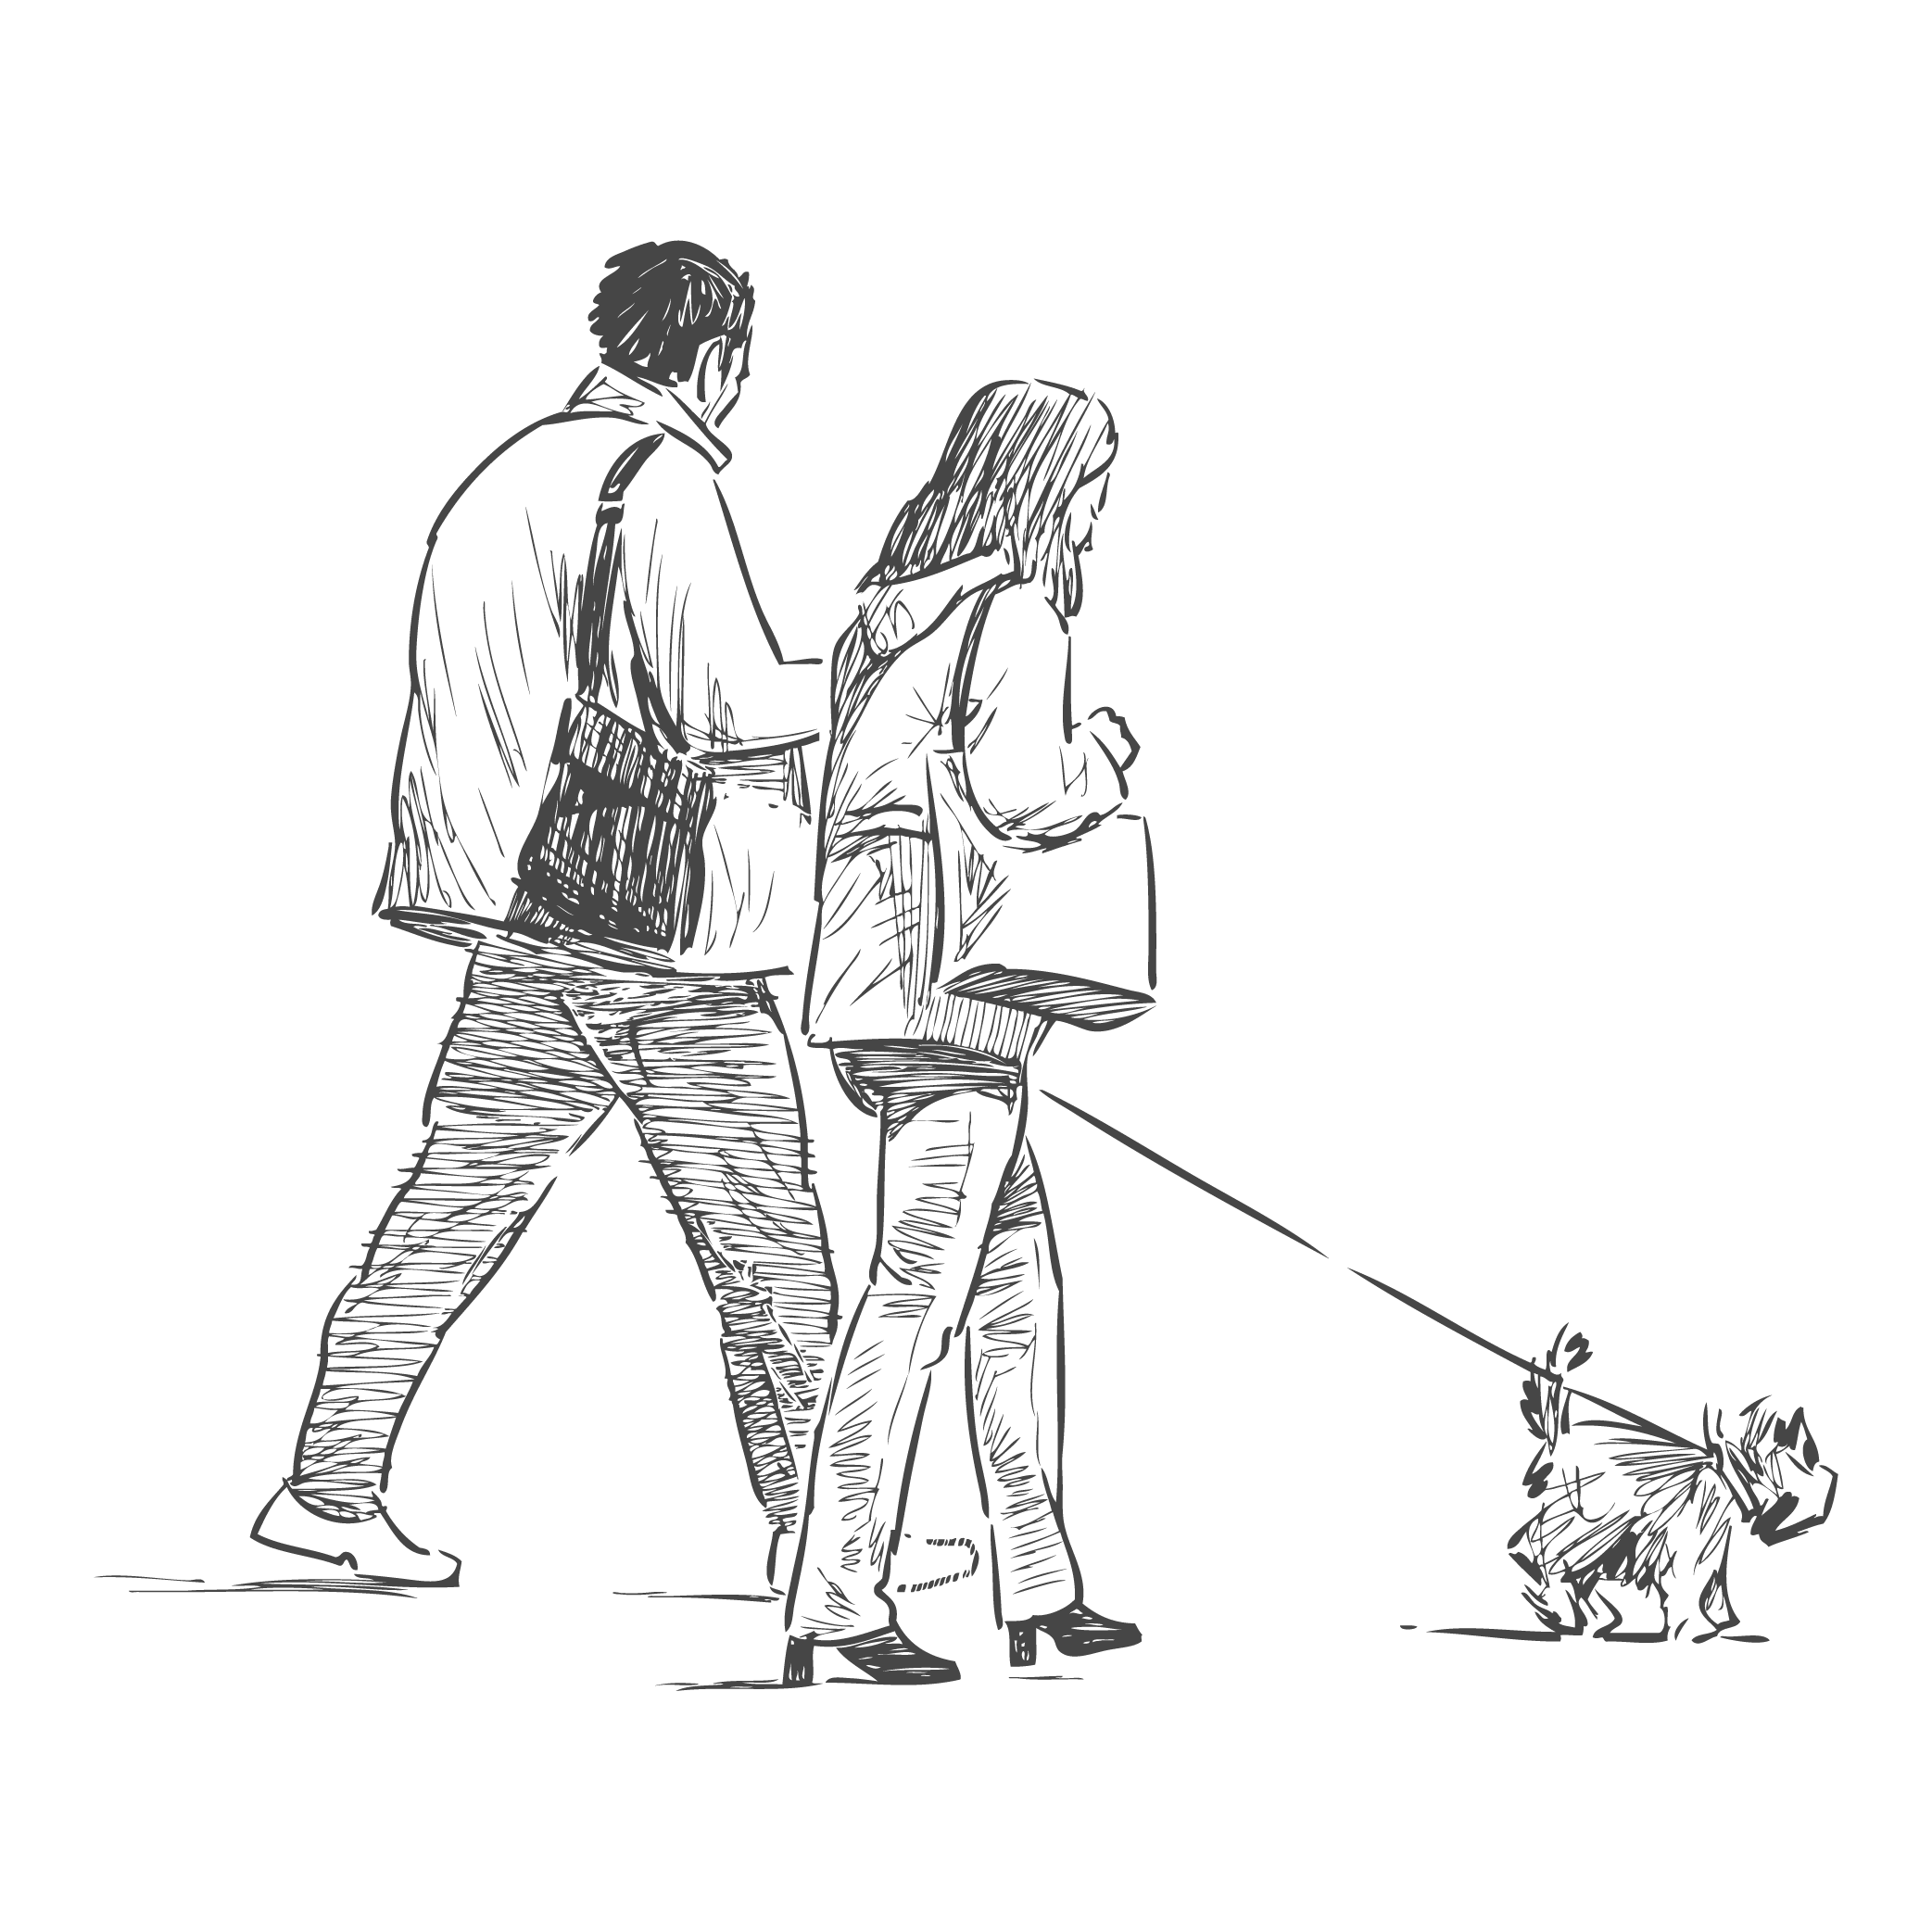 Sketch of residents on a walk with their pup near 210-220 E. 22nd Street in New York, New York